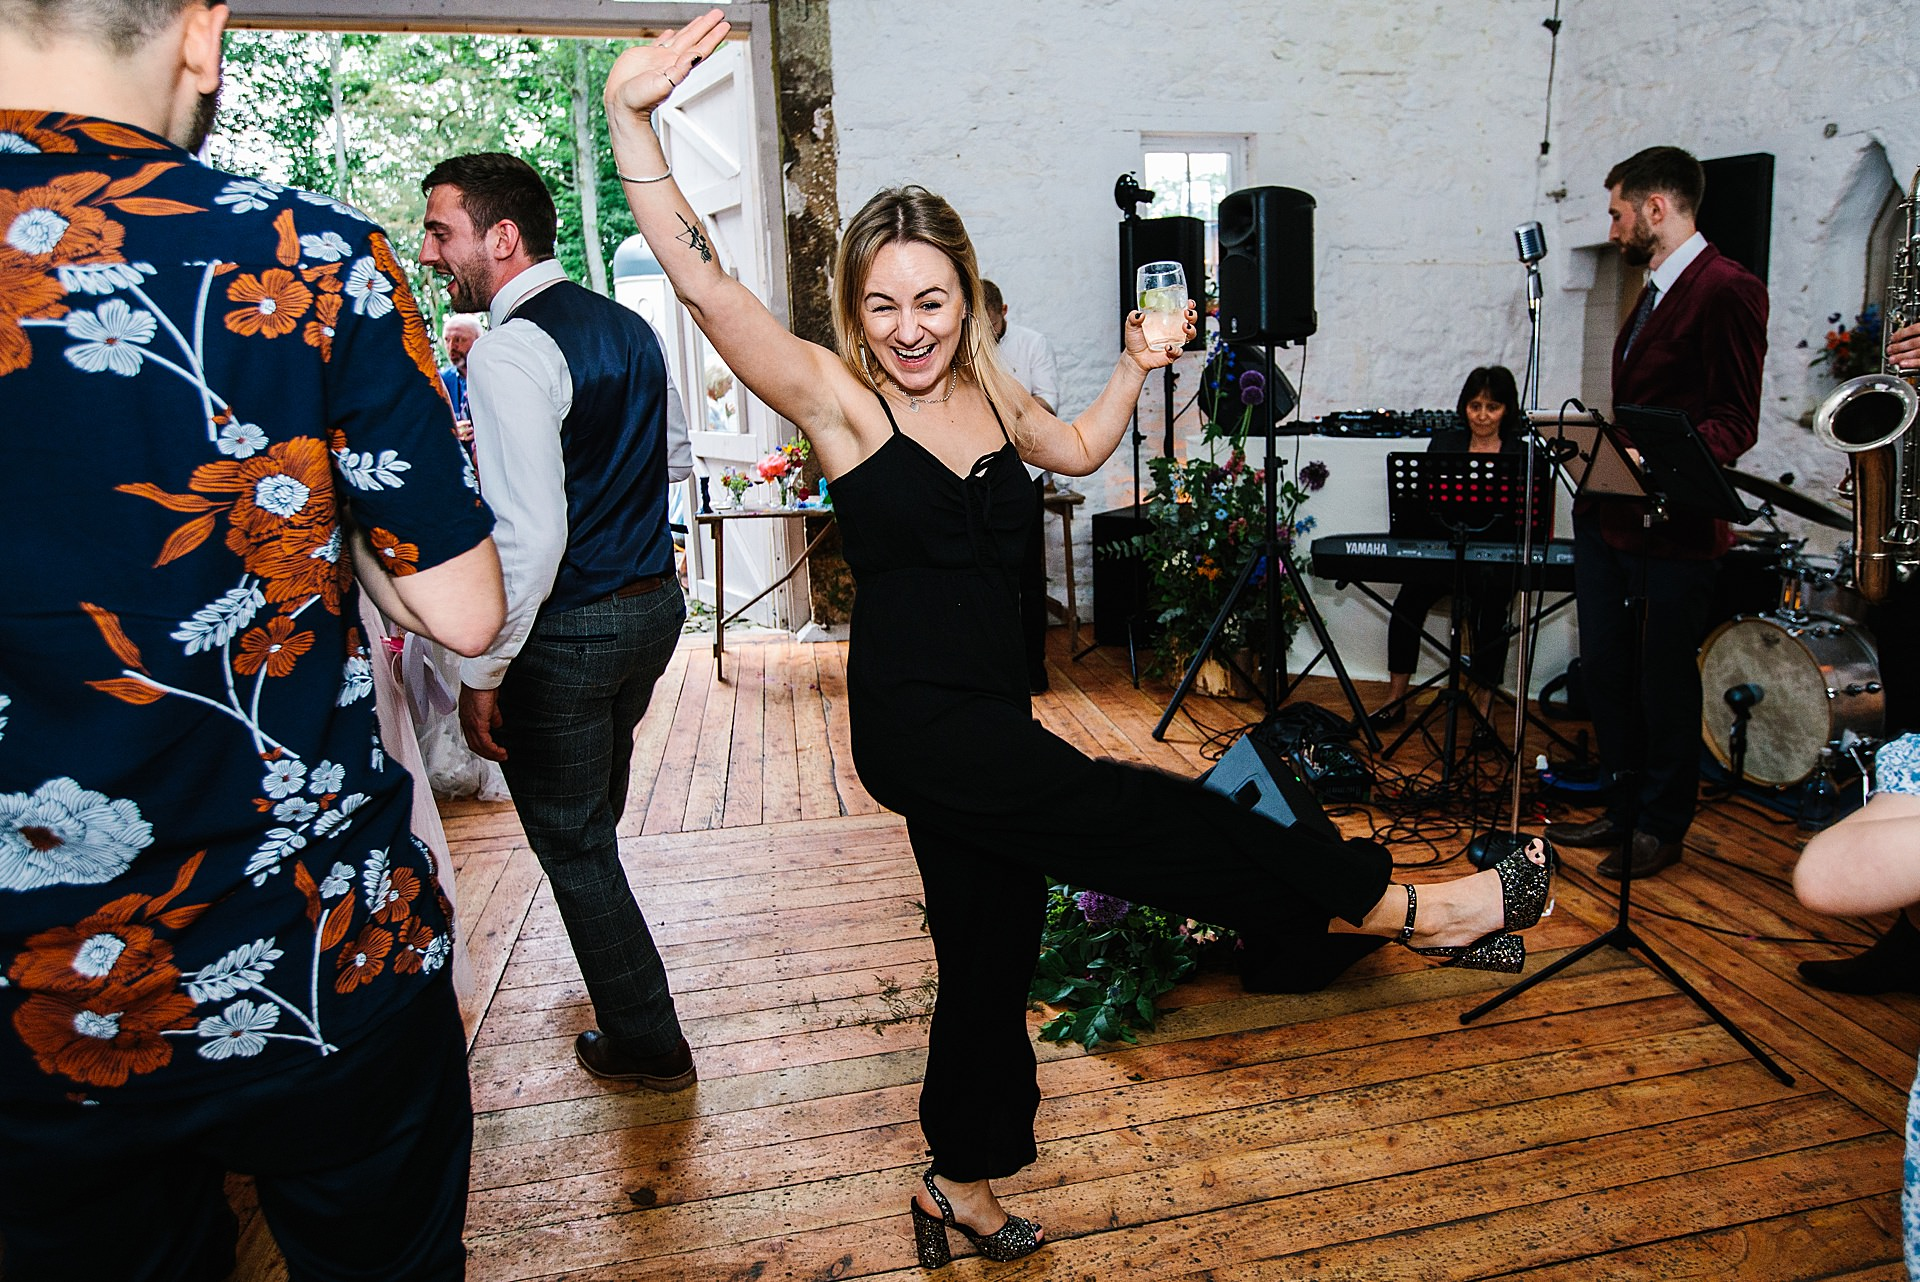 wedding guest dance moves on dance floor photography